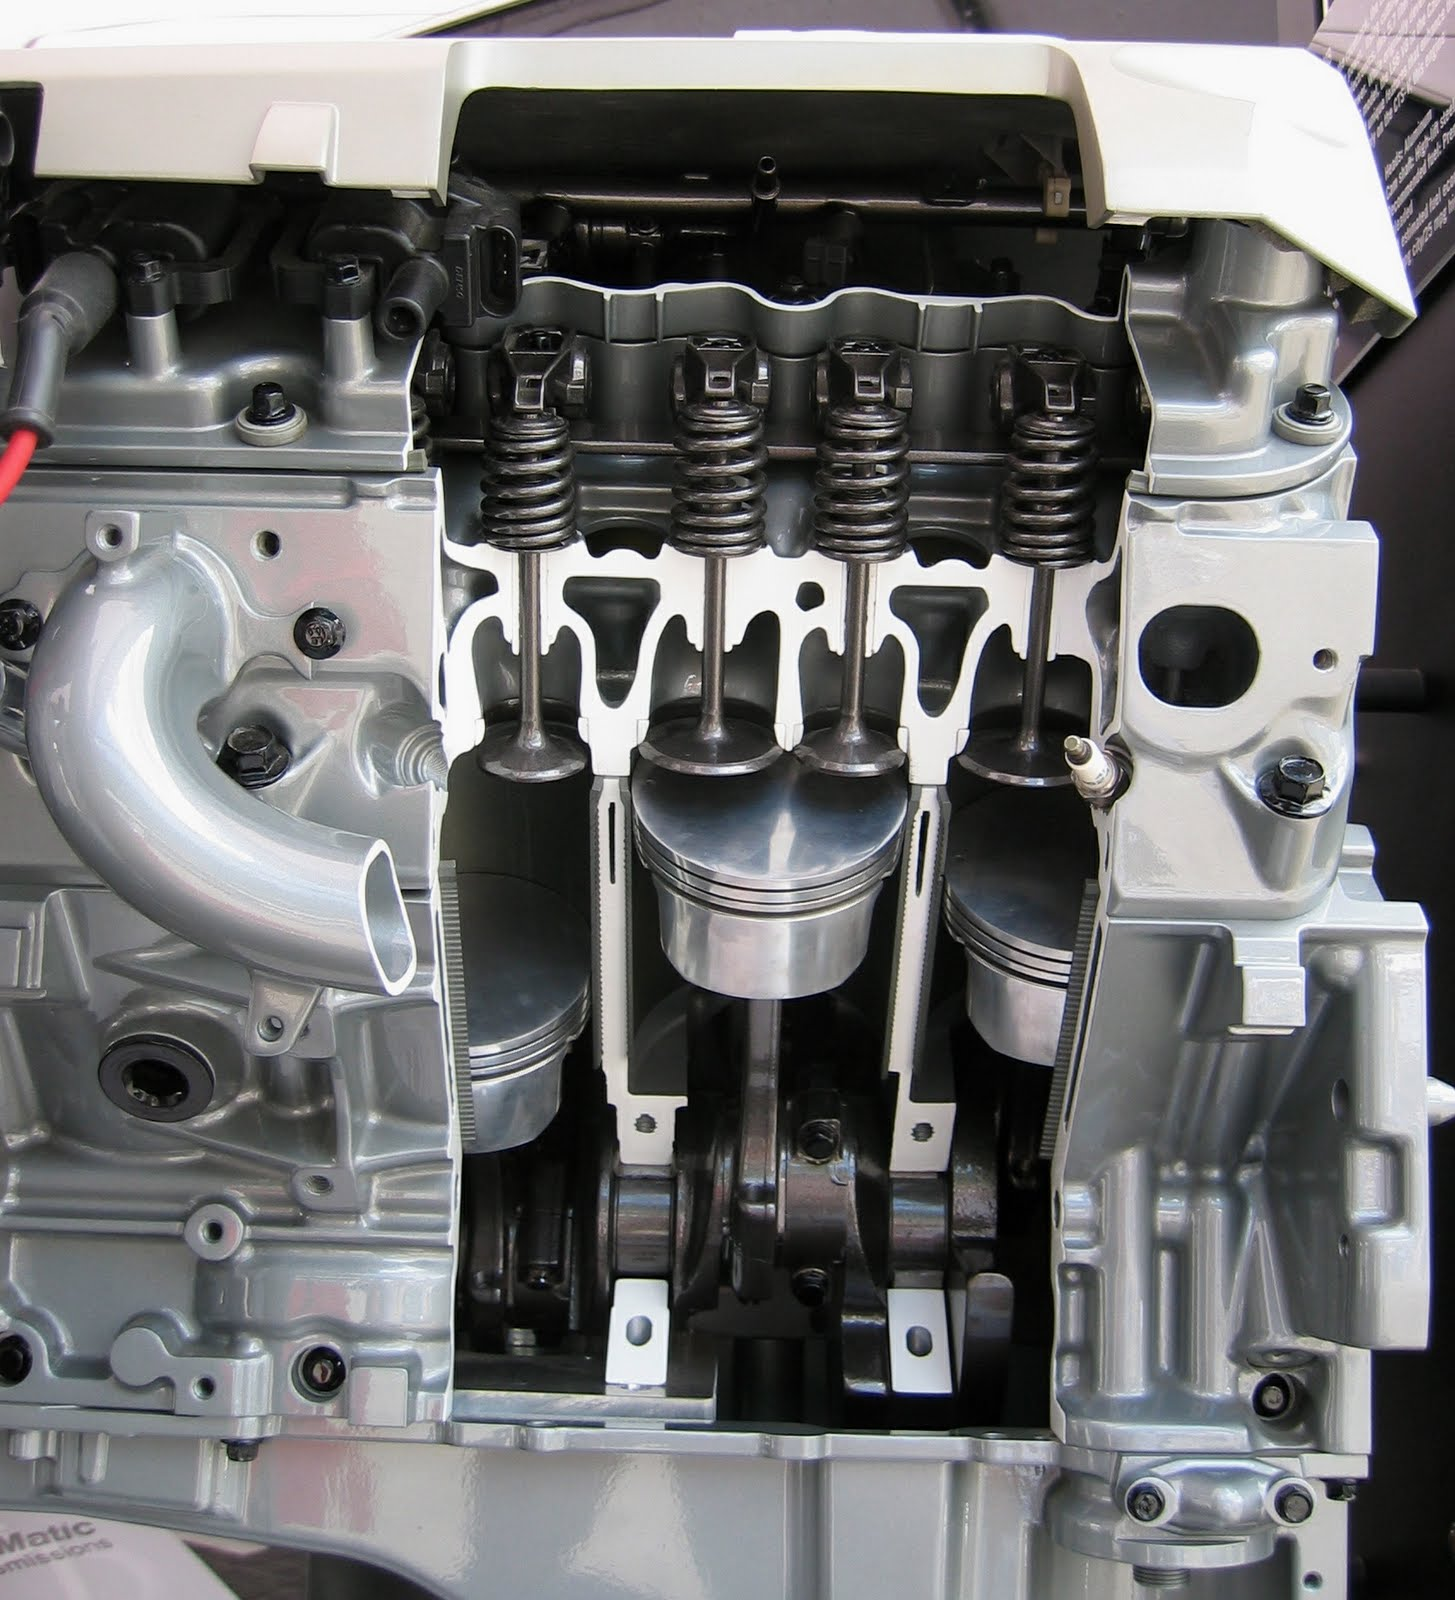 Valve Timing Diagram For 4 Stroke Diesel Engine Freightliner Columbia Fuse Box The Technology Four Cycle